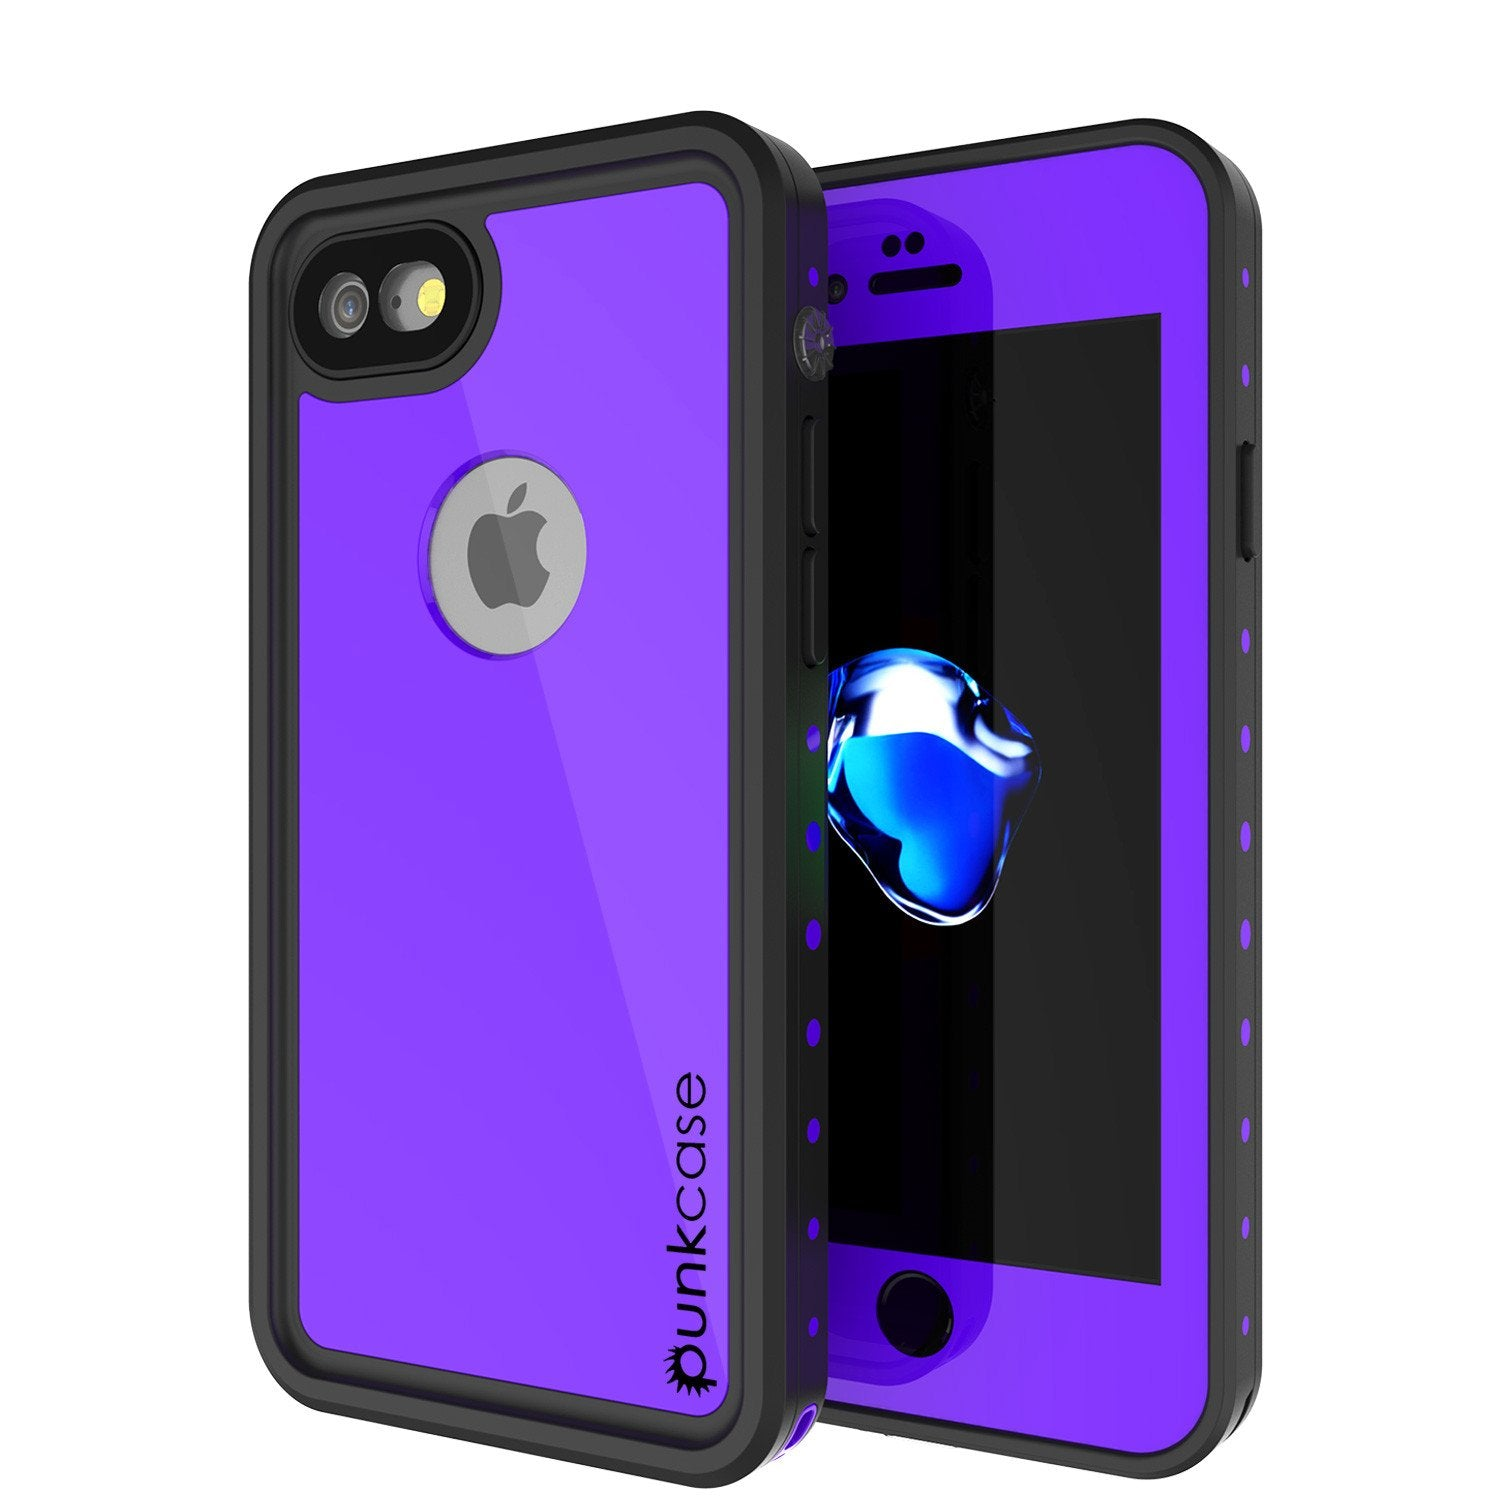 iPhone 7 Waterproof IP68 Case, Punkcase [Puple] [StudStar Series] [Slim Fit] [Dirtproof] [Snowproof] - PunkCase NZ